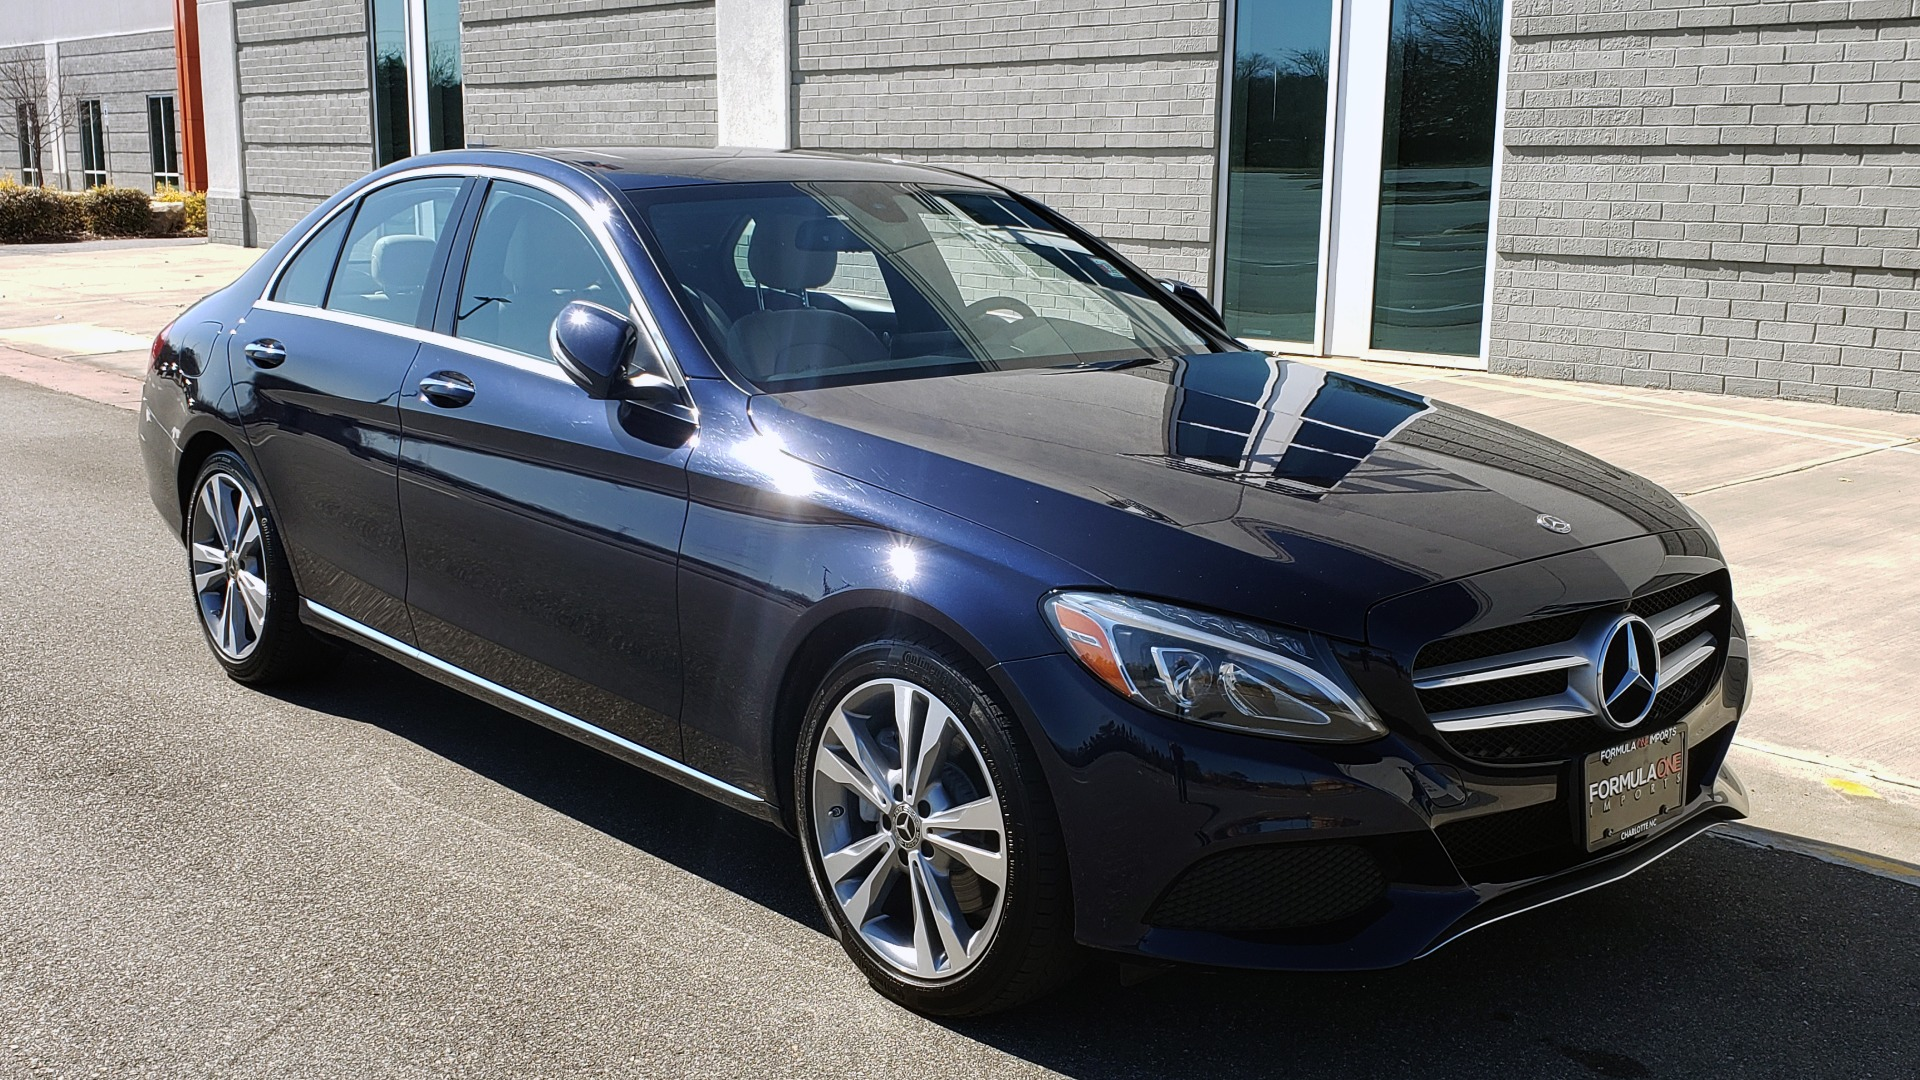 Used 2018 Mercedes-Benz C-CLASS C 300 PREMIUM / SUNROOF / BURMESTER / BSM / REARVIEW for sale $23,995 at Formula Imports in Charlotte NC 28227 5